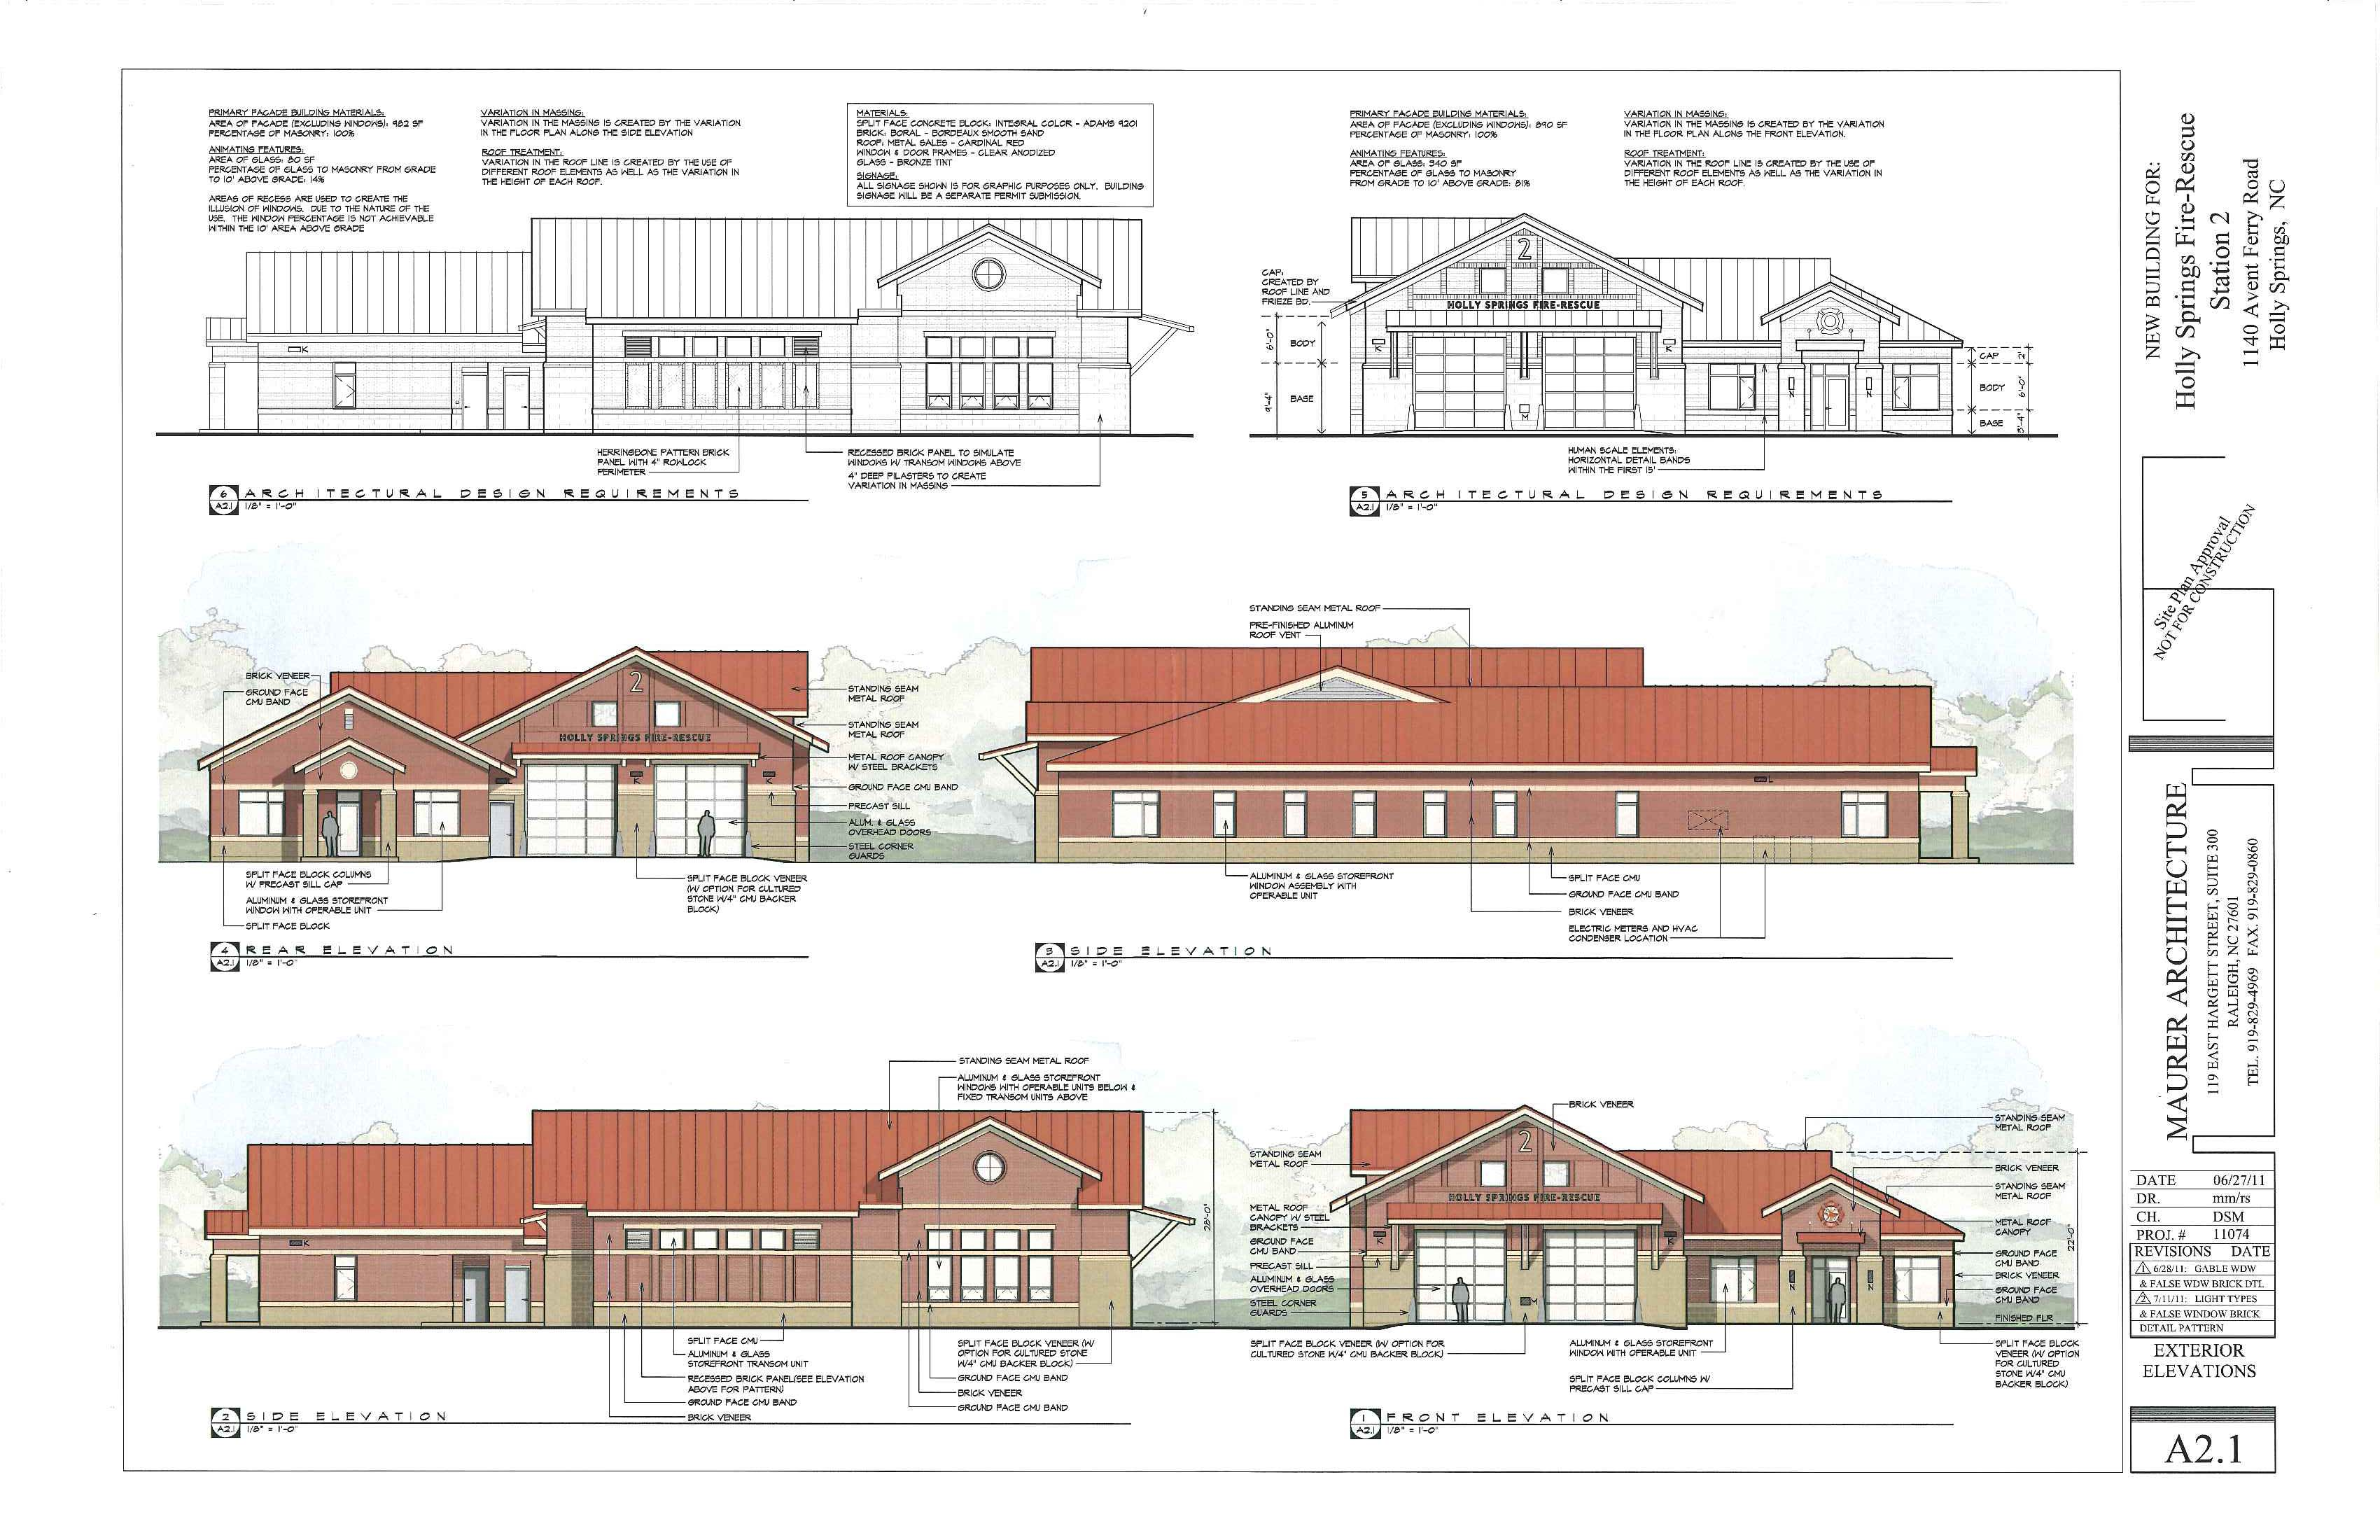 Image gallery elevation drawings House plan and elevation drawings